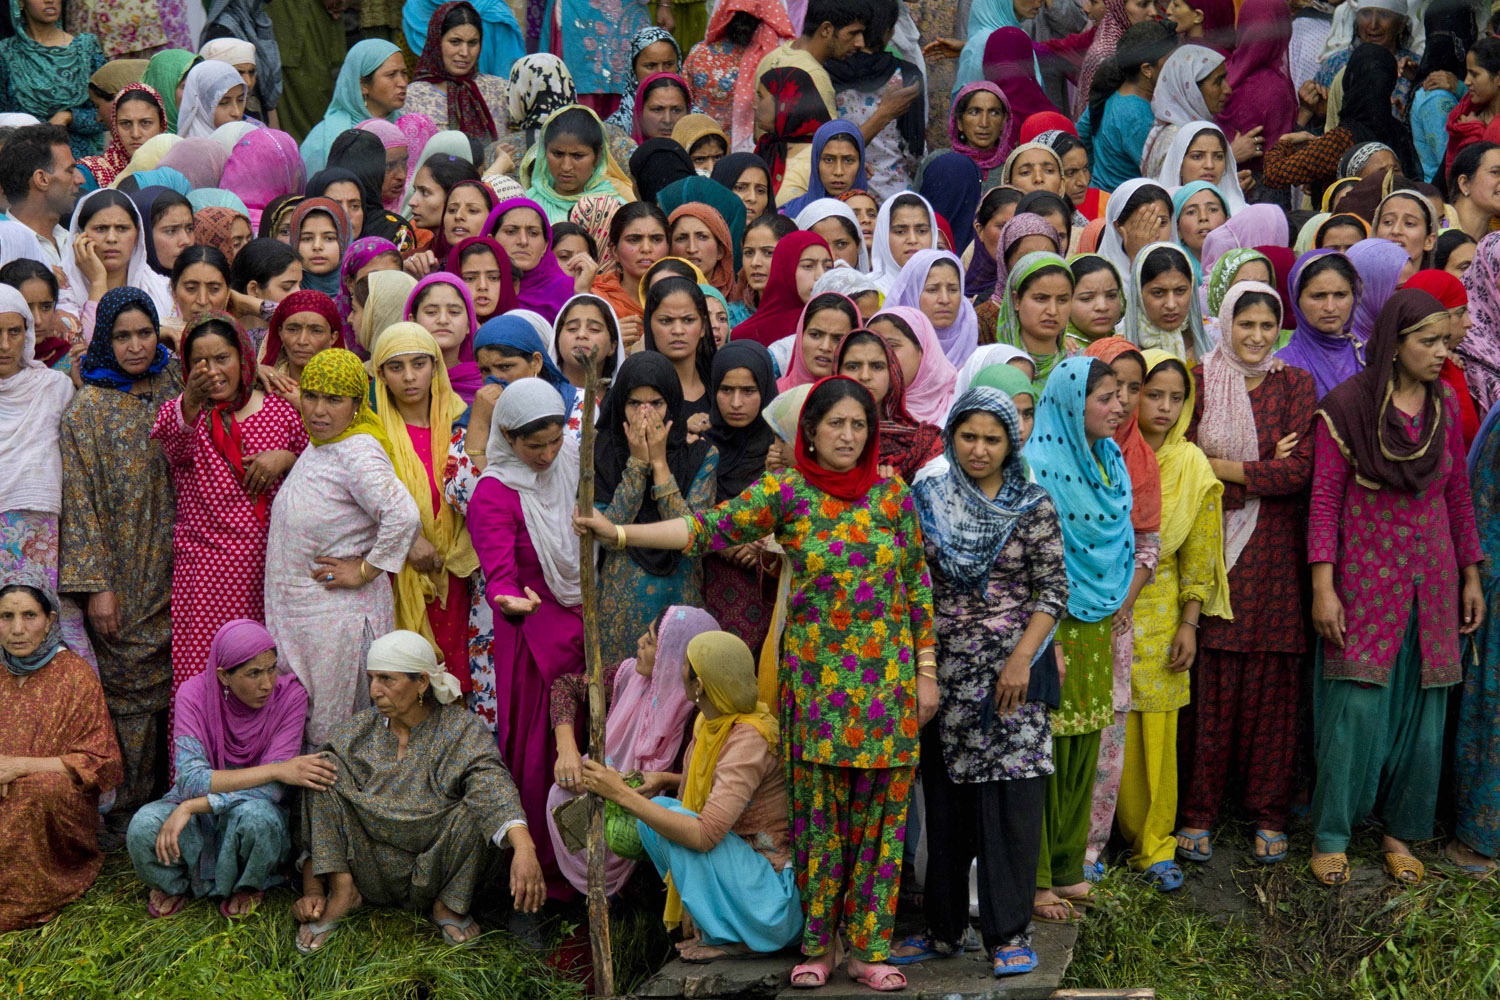 Aug. 11, 2012. Kashmiri Muslim women watch volunteers and rescue workers search for missing people in the water of Dal Lake in Srinagar, India, after the collapse of a wooden bridge injured dozens.